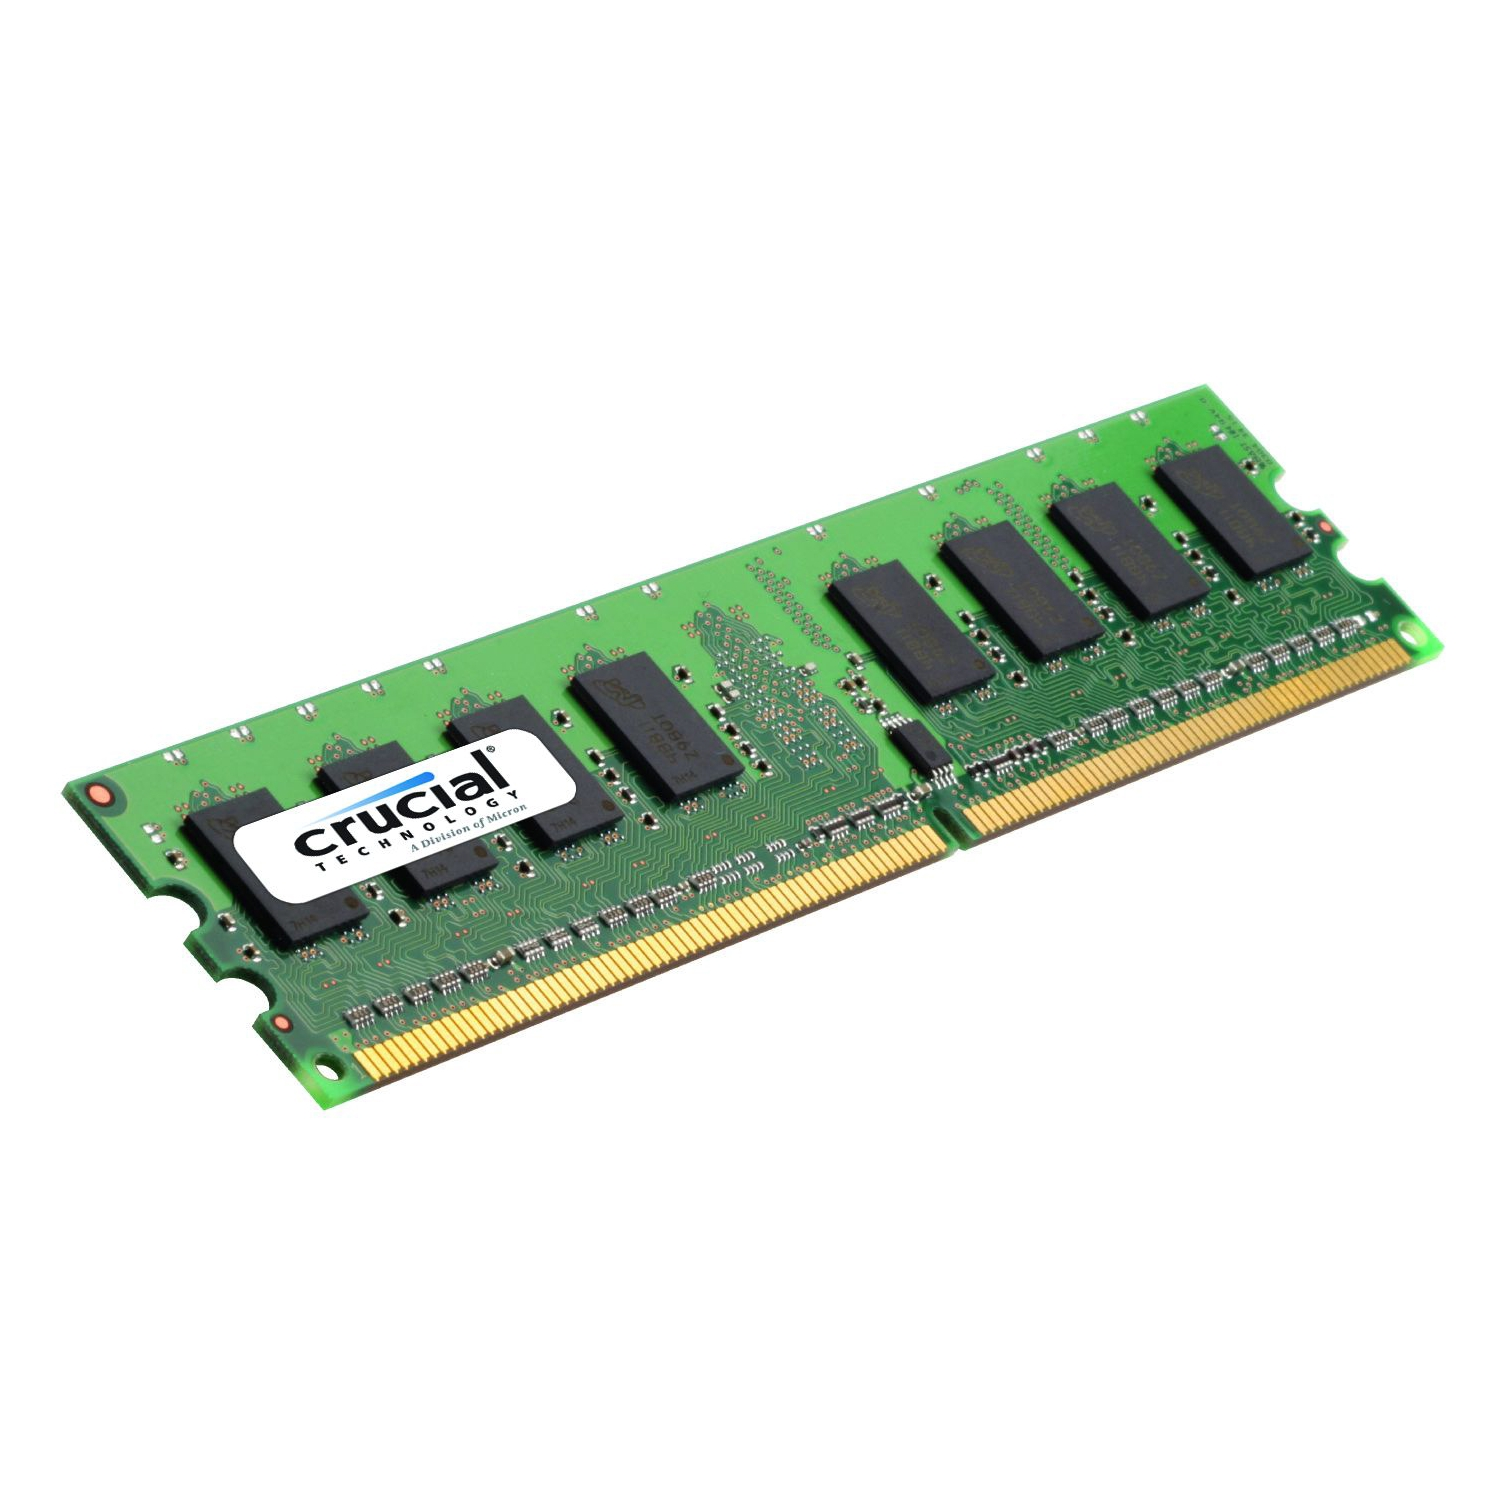 Crucial 4gb Ddr3 Sdram Memory Module - 4 Gb - Ddr3 Sdram - 1600 Mhz Ddr3-1600/pc3-12800 - Non-ecc - Unbuffered - 240-pin - Dimm (ct51264bd160b)